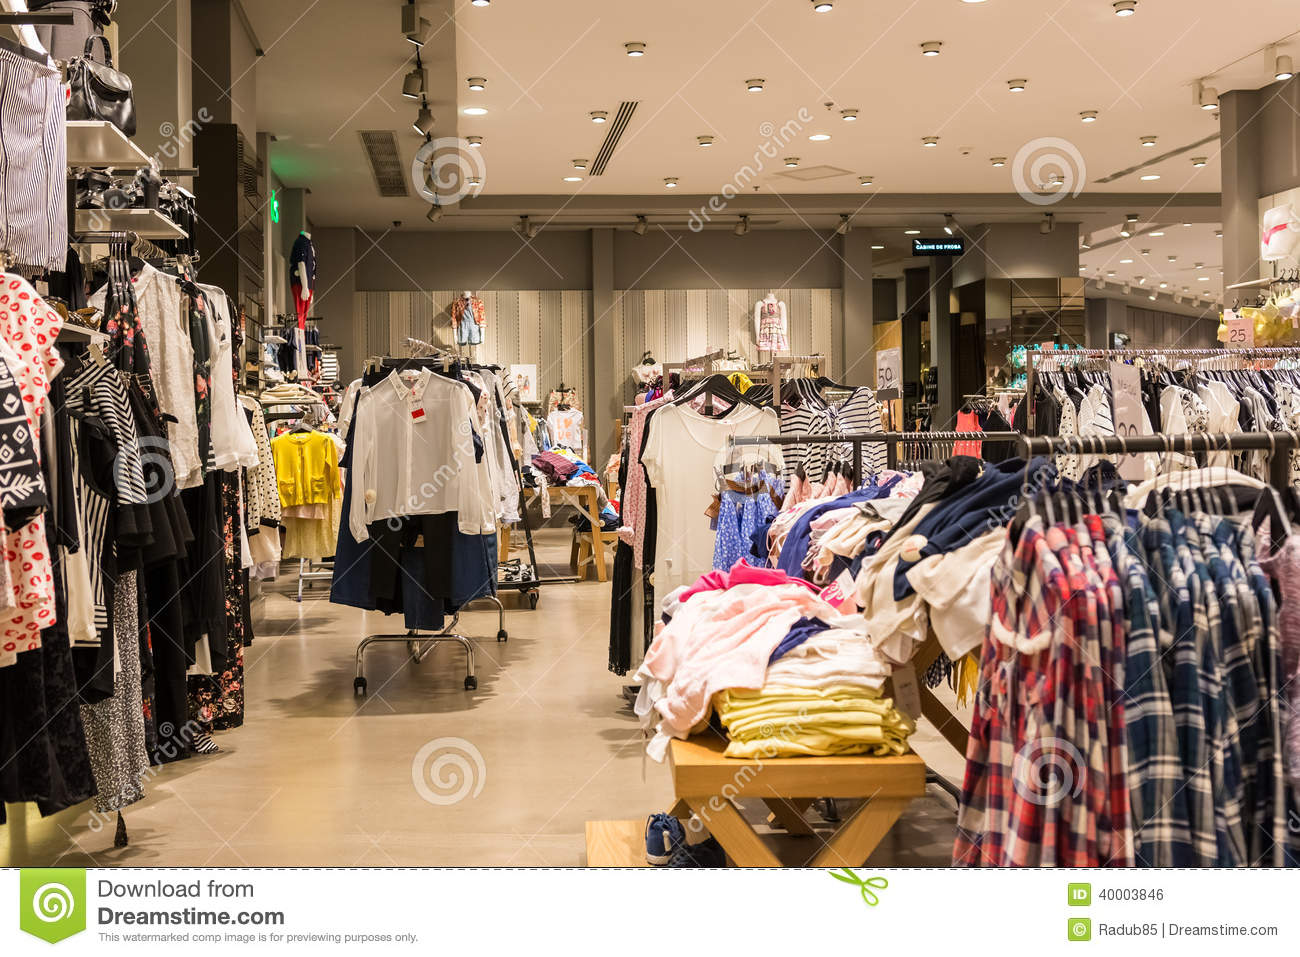 BUCHAREST, ROMANIA - APRIL 20: Fashion Clothes Store In Shopping Mall